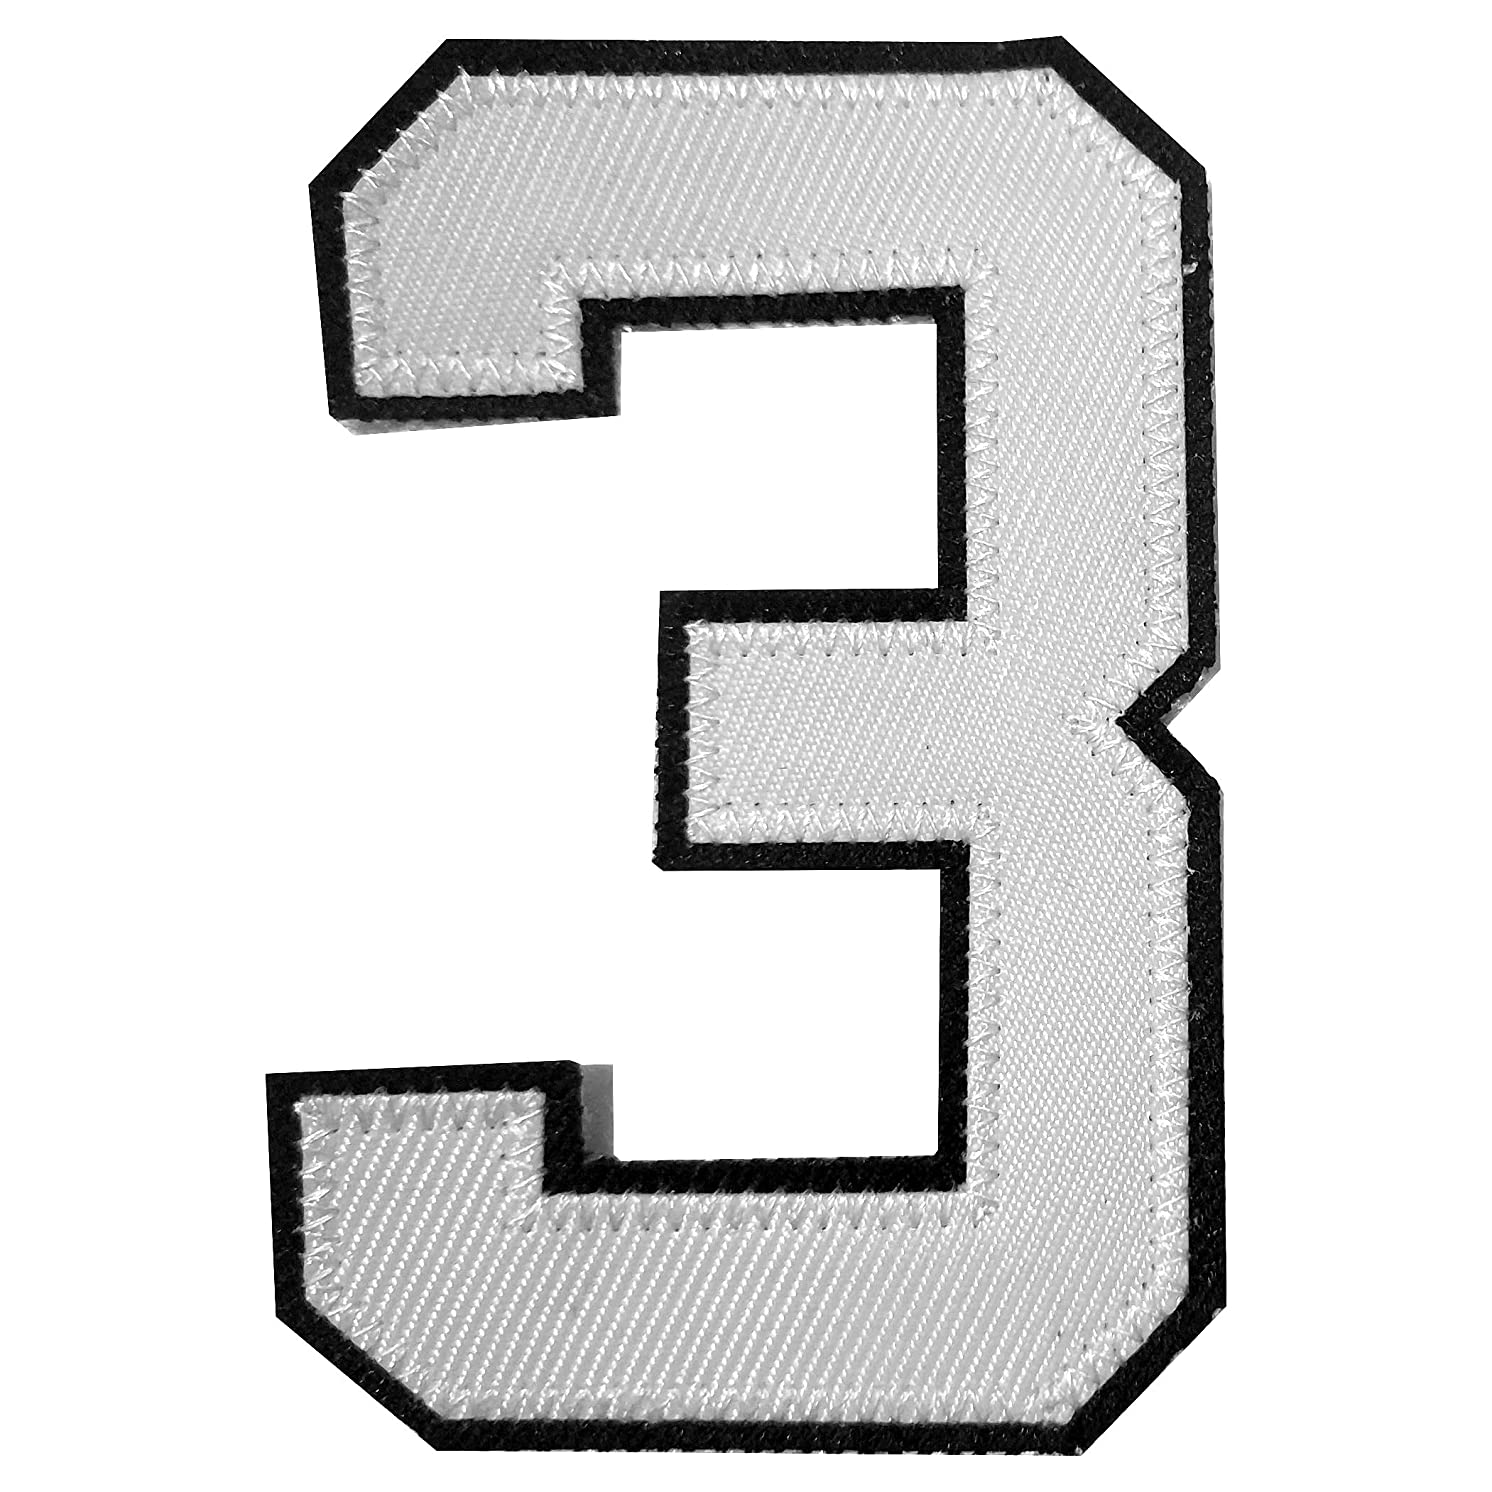 4PCS-10 cm Tall White with Black Outlined Iron on Transfer or Sew-on Twill Jersey Numbers 3 for Custom Jerseys or Sports Shirts